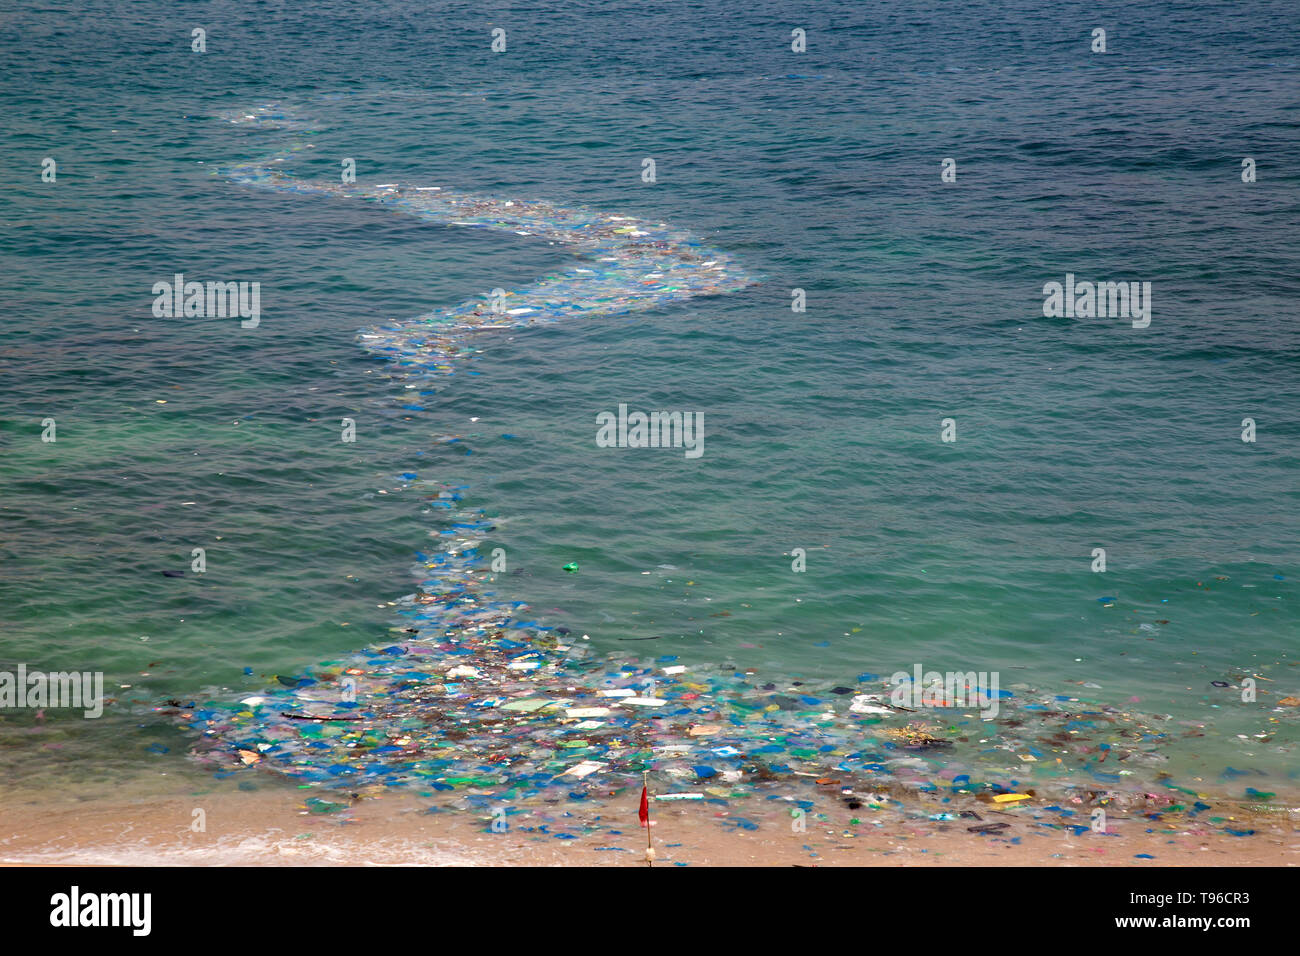 Plastic waste is stranded on the beach at Cam Ranh, south china sea, Ninh Thuan, Vietnam - Stock Image